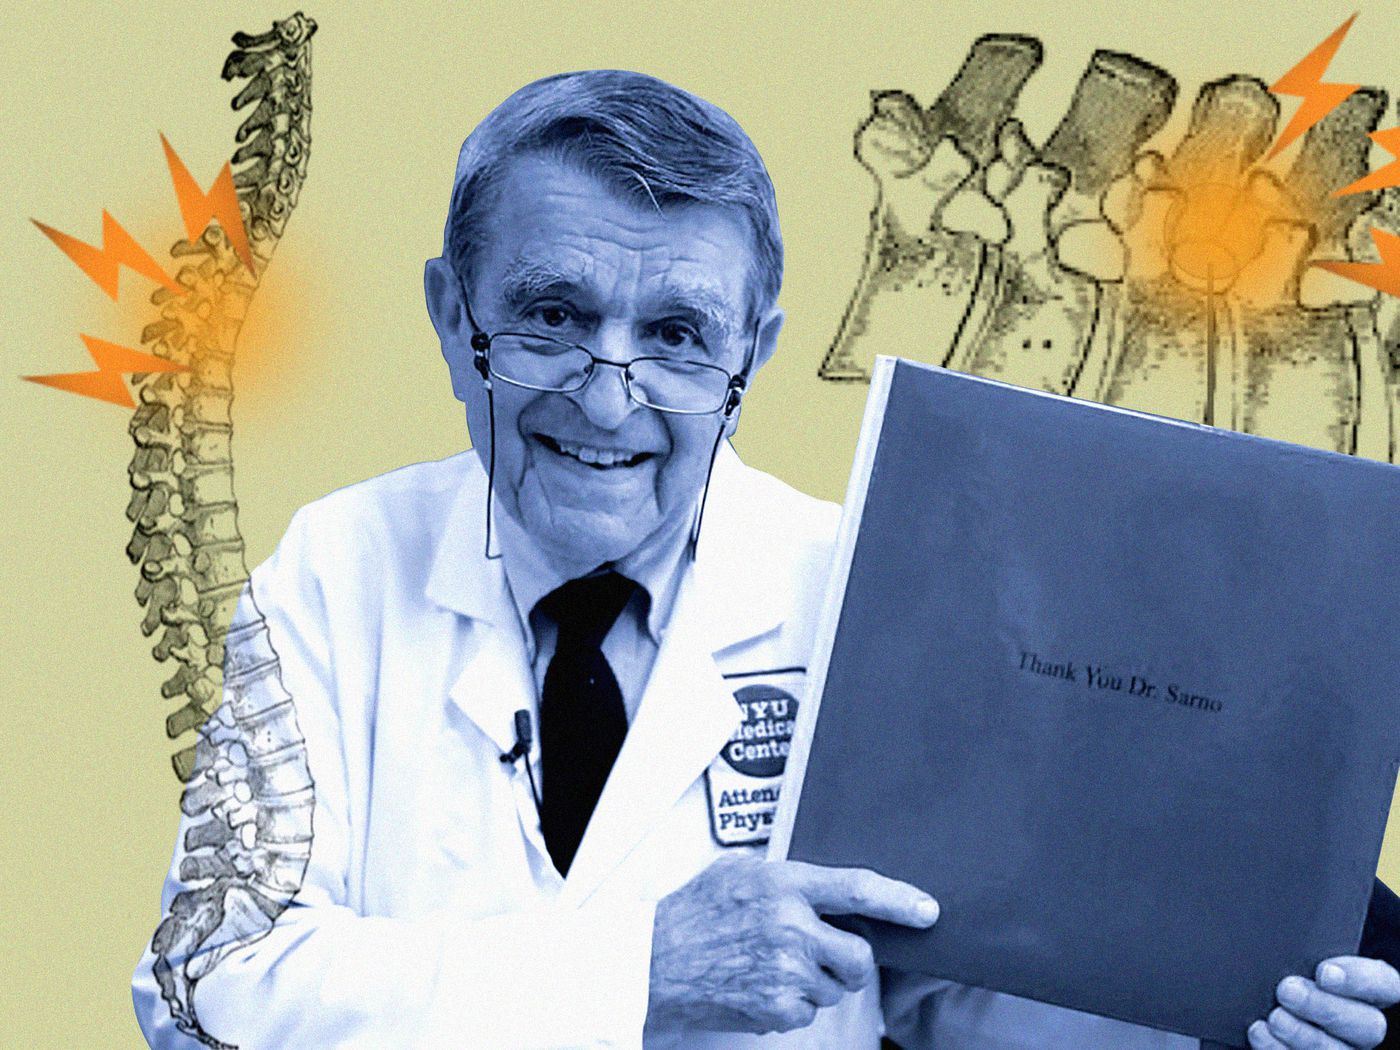 Dr  John Sarno is America's most famous back pain doctor  He